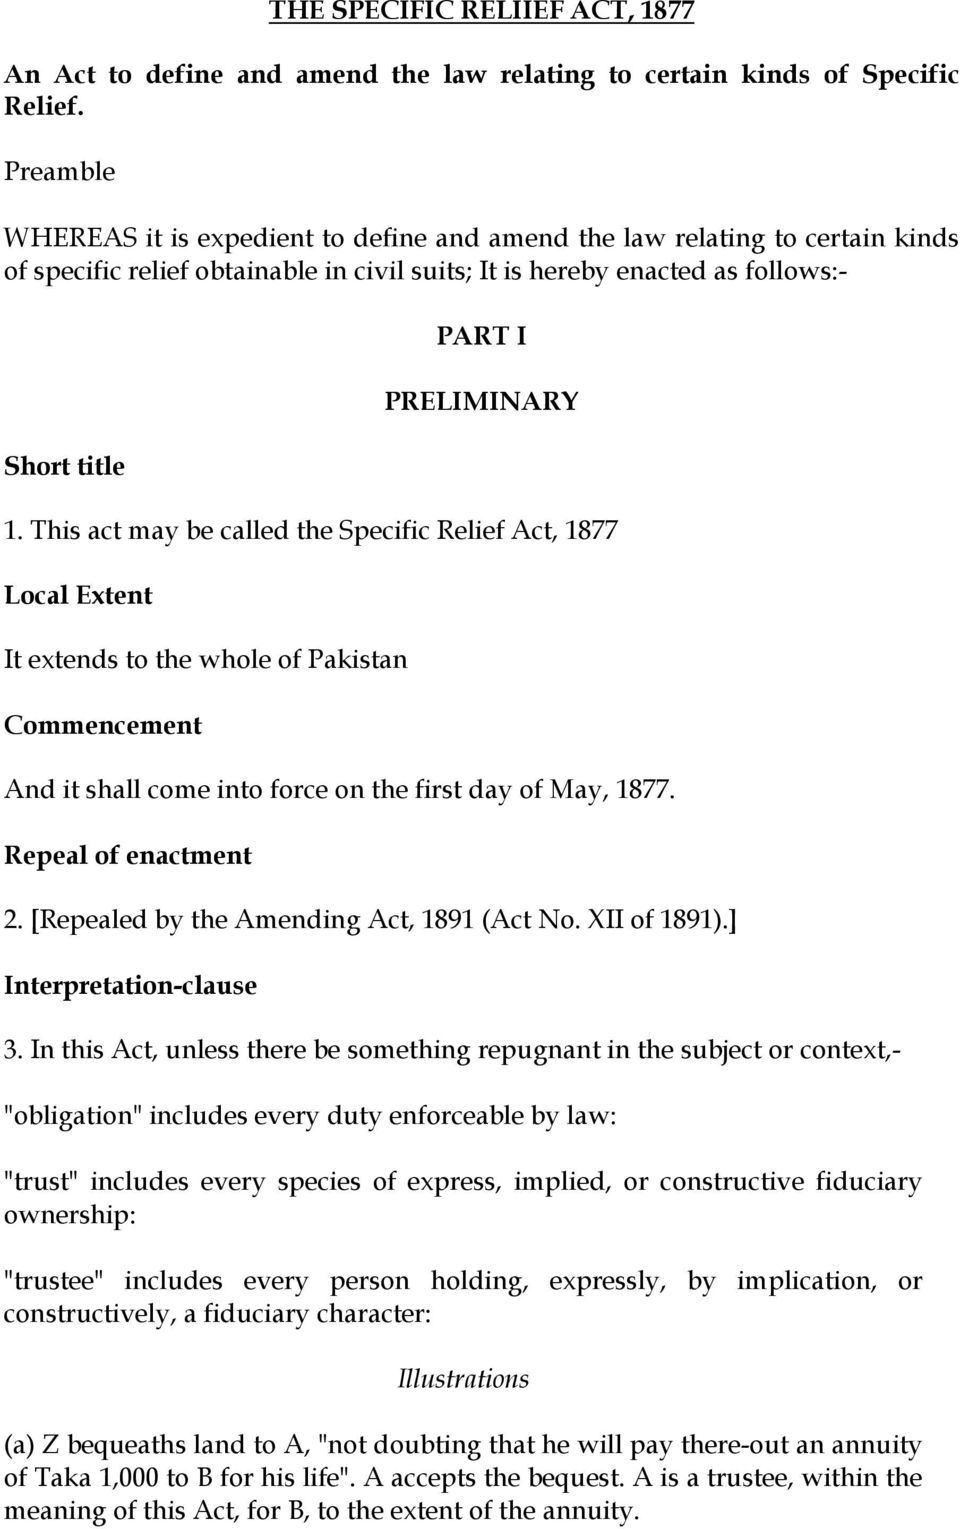 This act may be called the Specific Relief Act, 1877 Local Extent It extends to the whole of Pakistan Commencement And it shall come into force on the first day of May, 1877. Repeal of enactment 2.